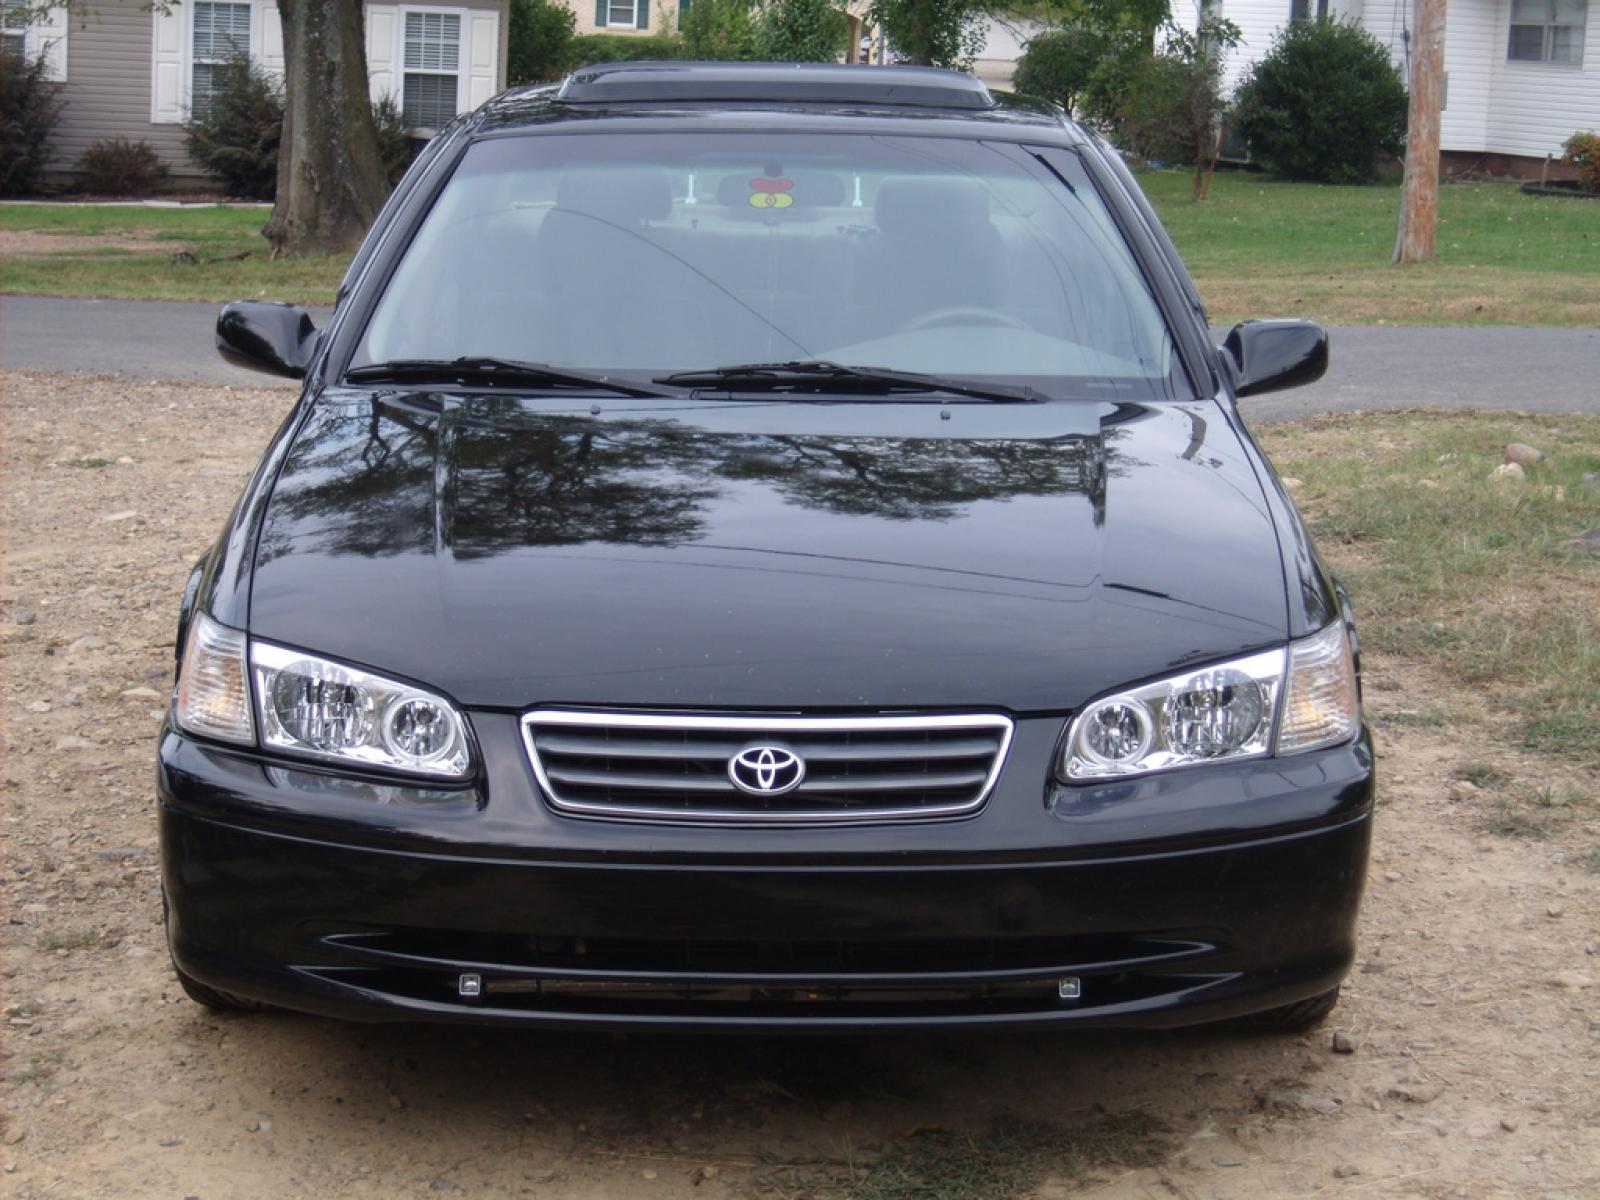 2001 Toyota Camry Information And Photos Zombiedrive Wiring Diagram 800 1024 1280 1600 Origin